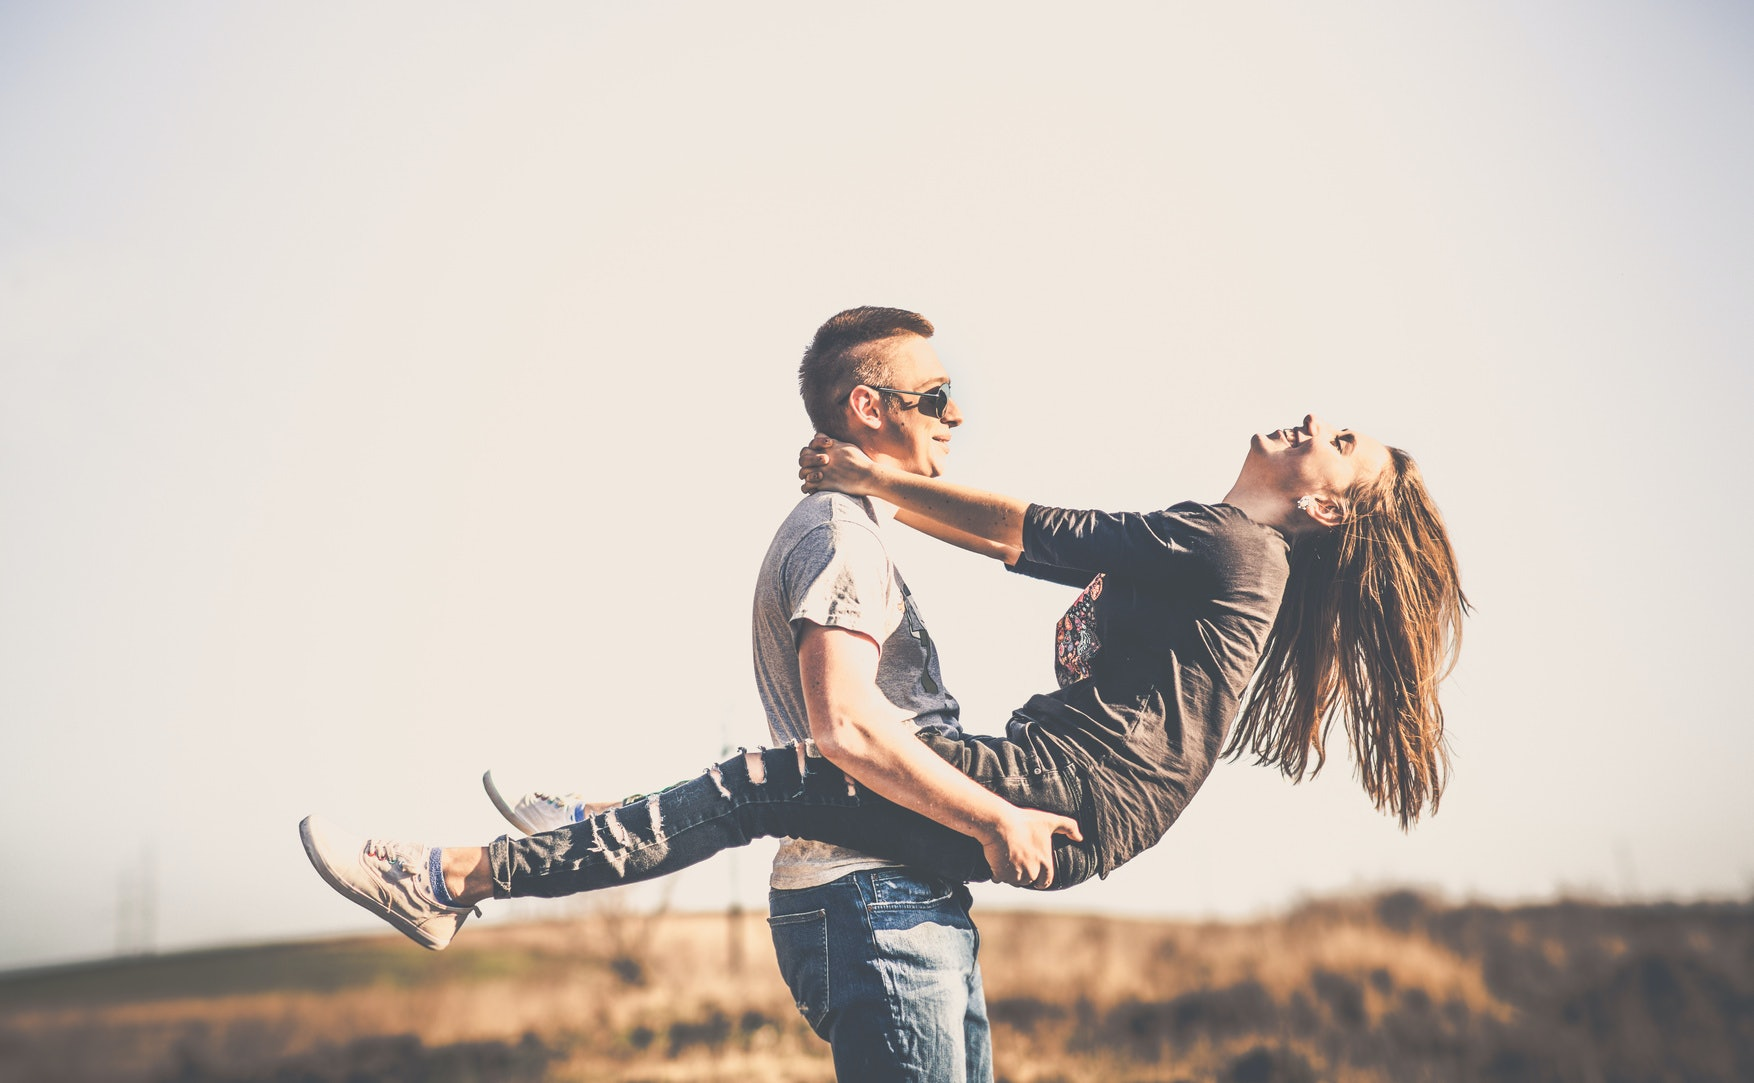 6 month hookup anniversary gift ideas for her